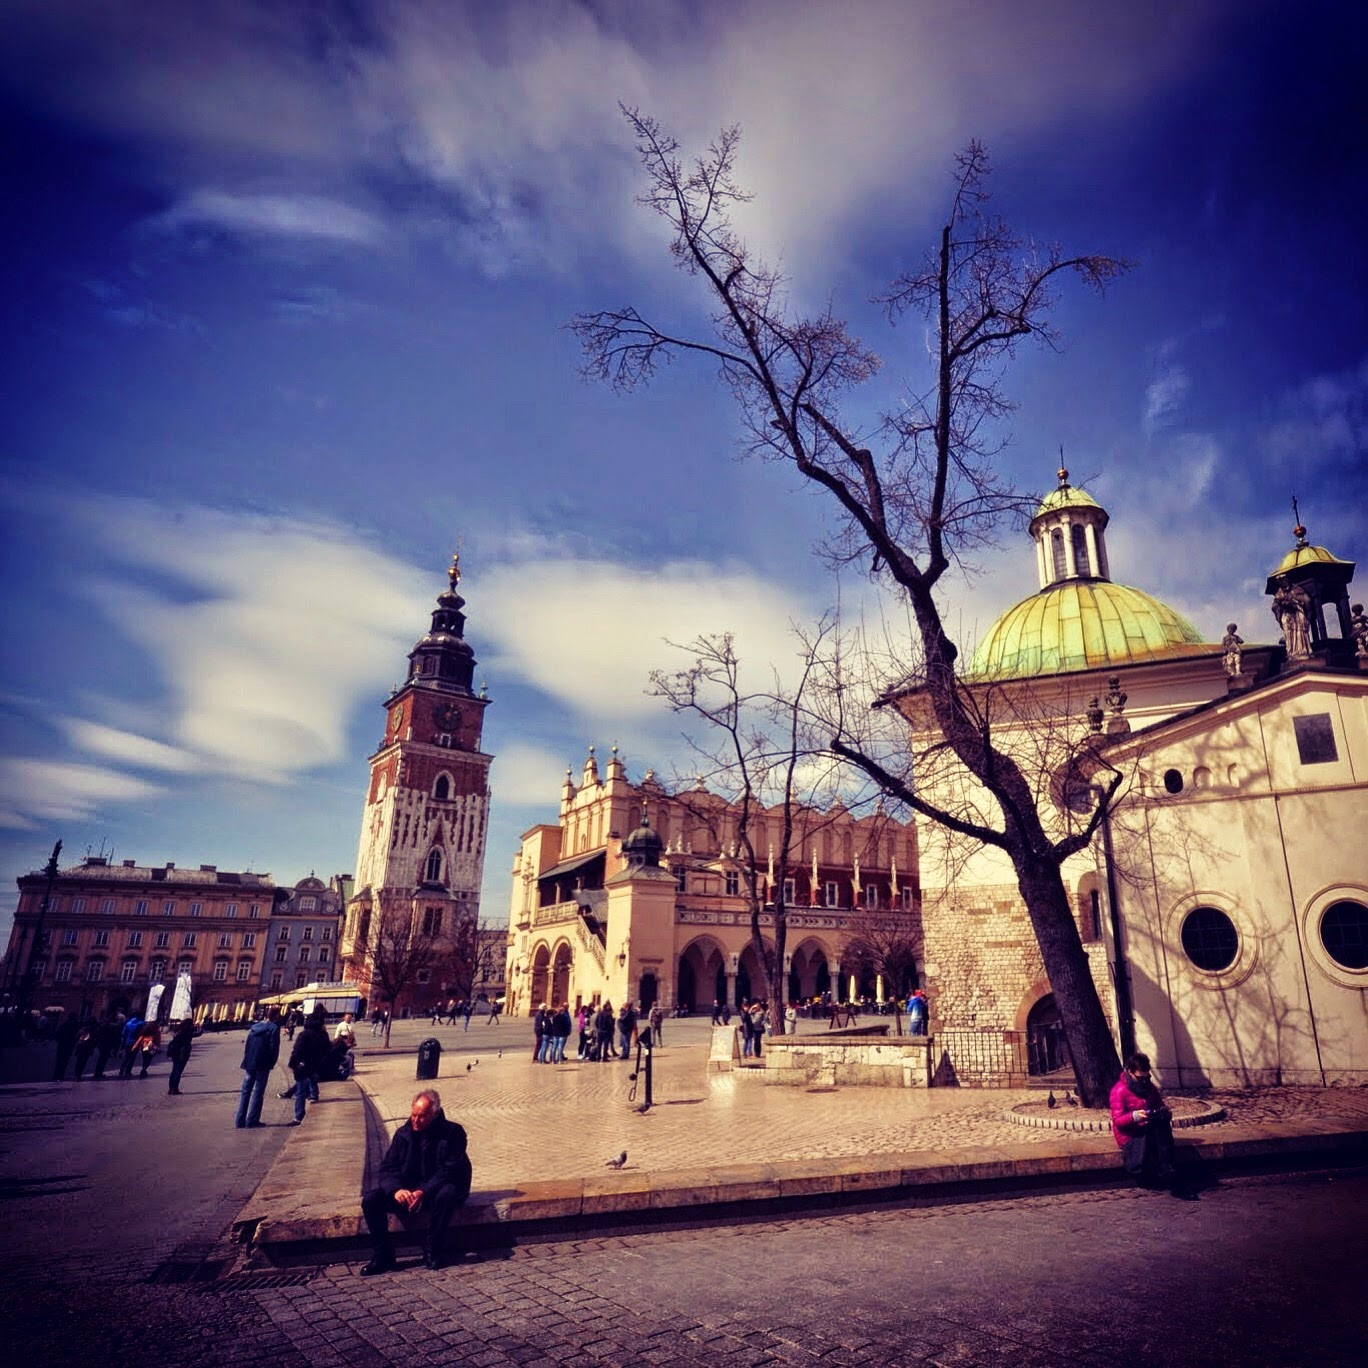 Visit Krakow Poland: Best Travel Guide To Krakow, Poland: Attractions